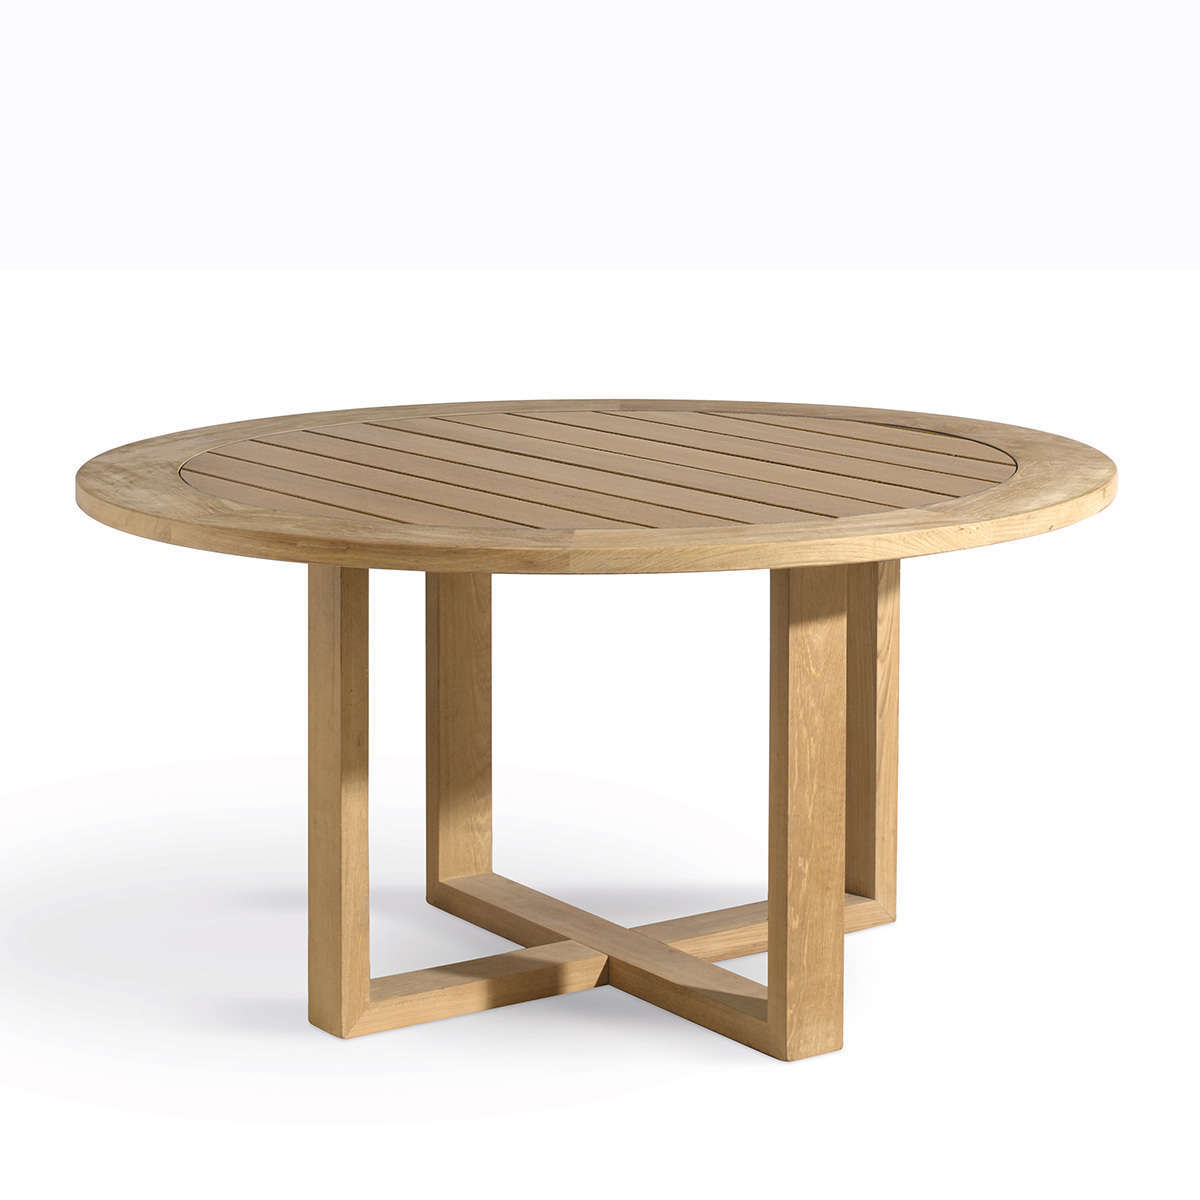 Sienta Teak Round Table